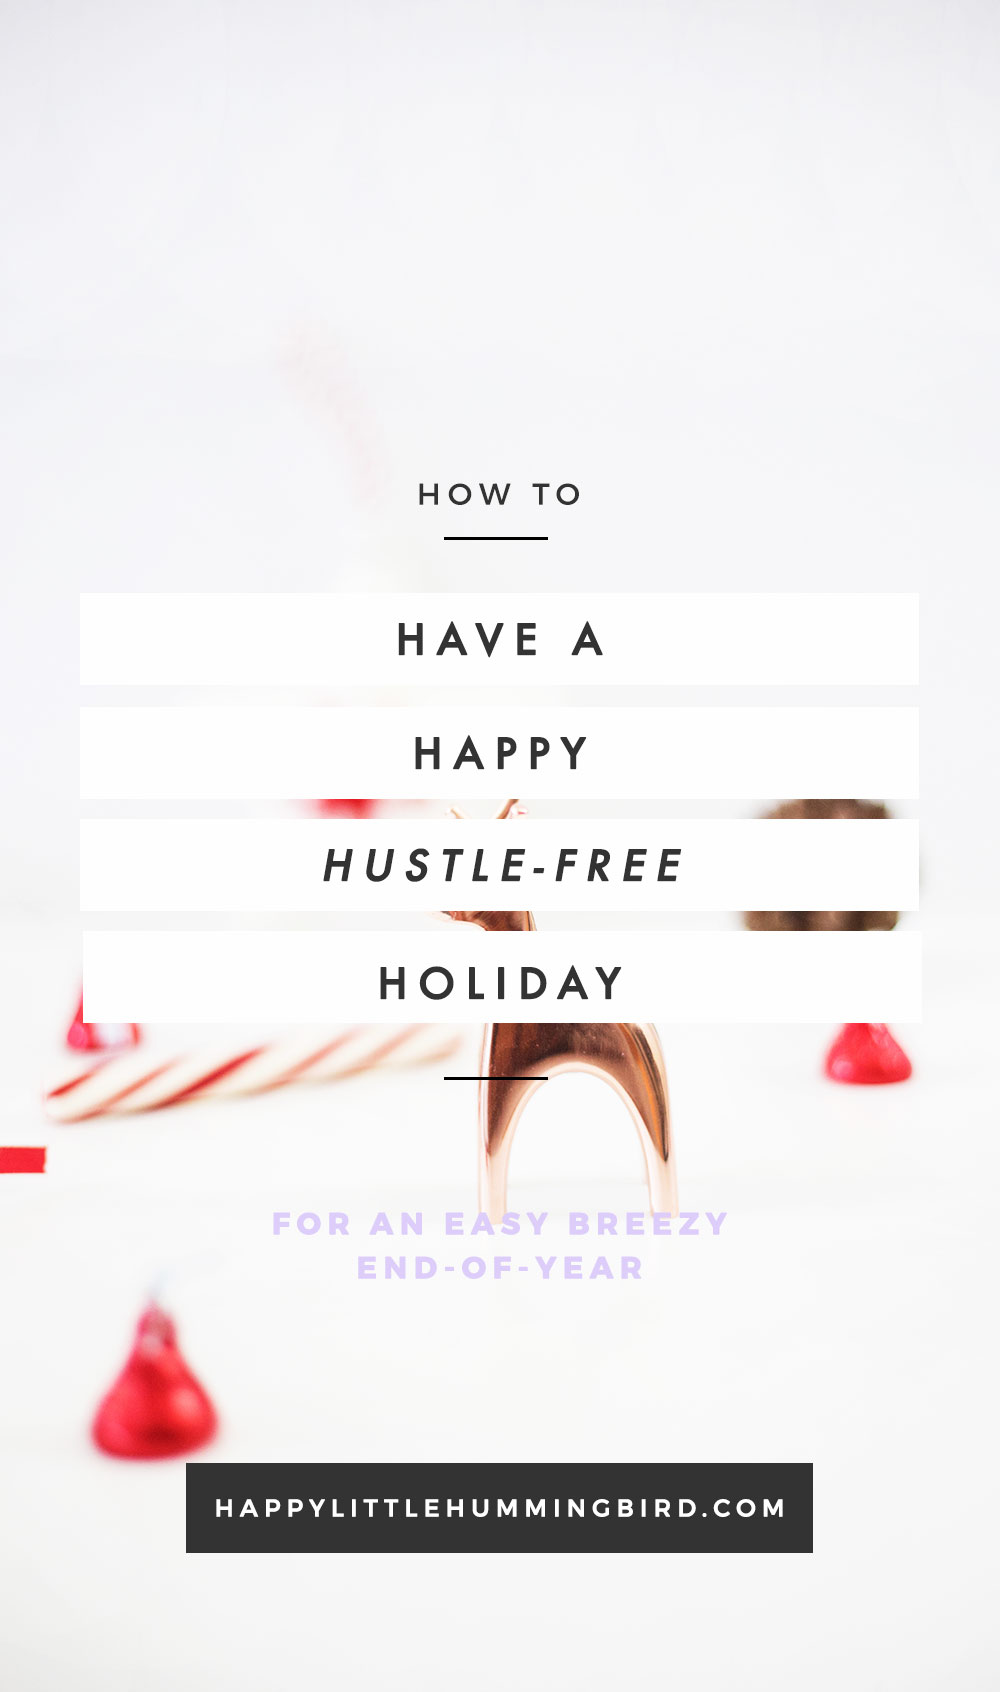 There's shopping to do, holiday cards to write, finishing touches to go on the tree, random to-dos to check off and end-of-year work projects that need to conclude—and those are just a few of the things on your rapidly growing list. I'm exhausted just thinking about it, too! In this post, I give my best tips for a happy hustle-free holiday to help invite more ease and flow into your already busy life & biz.